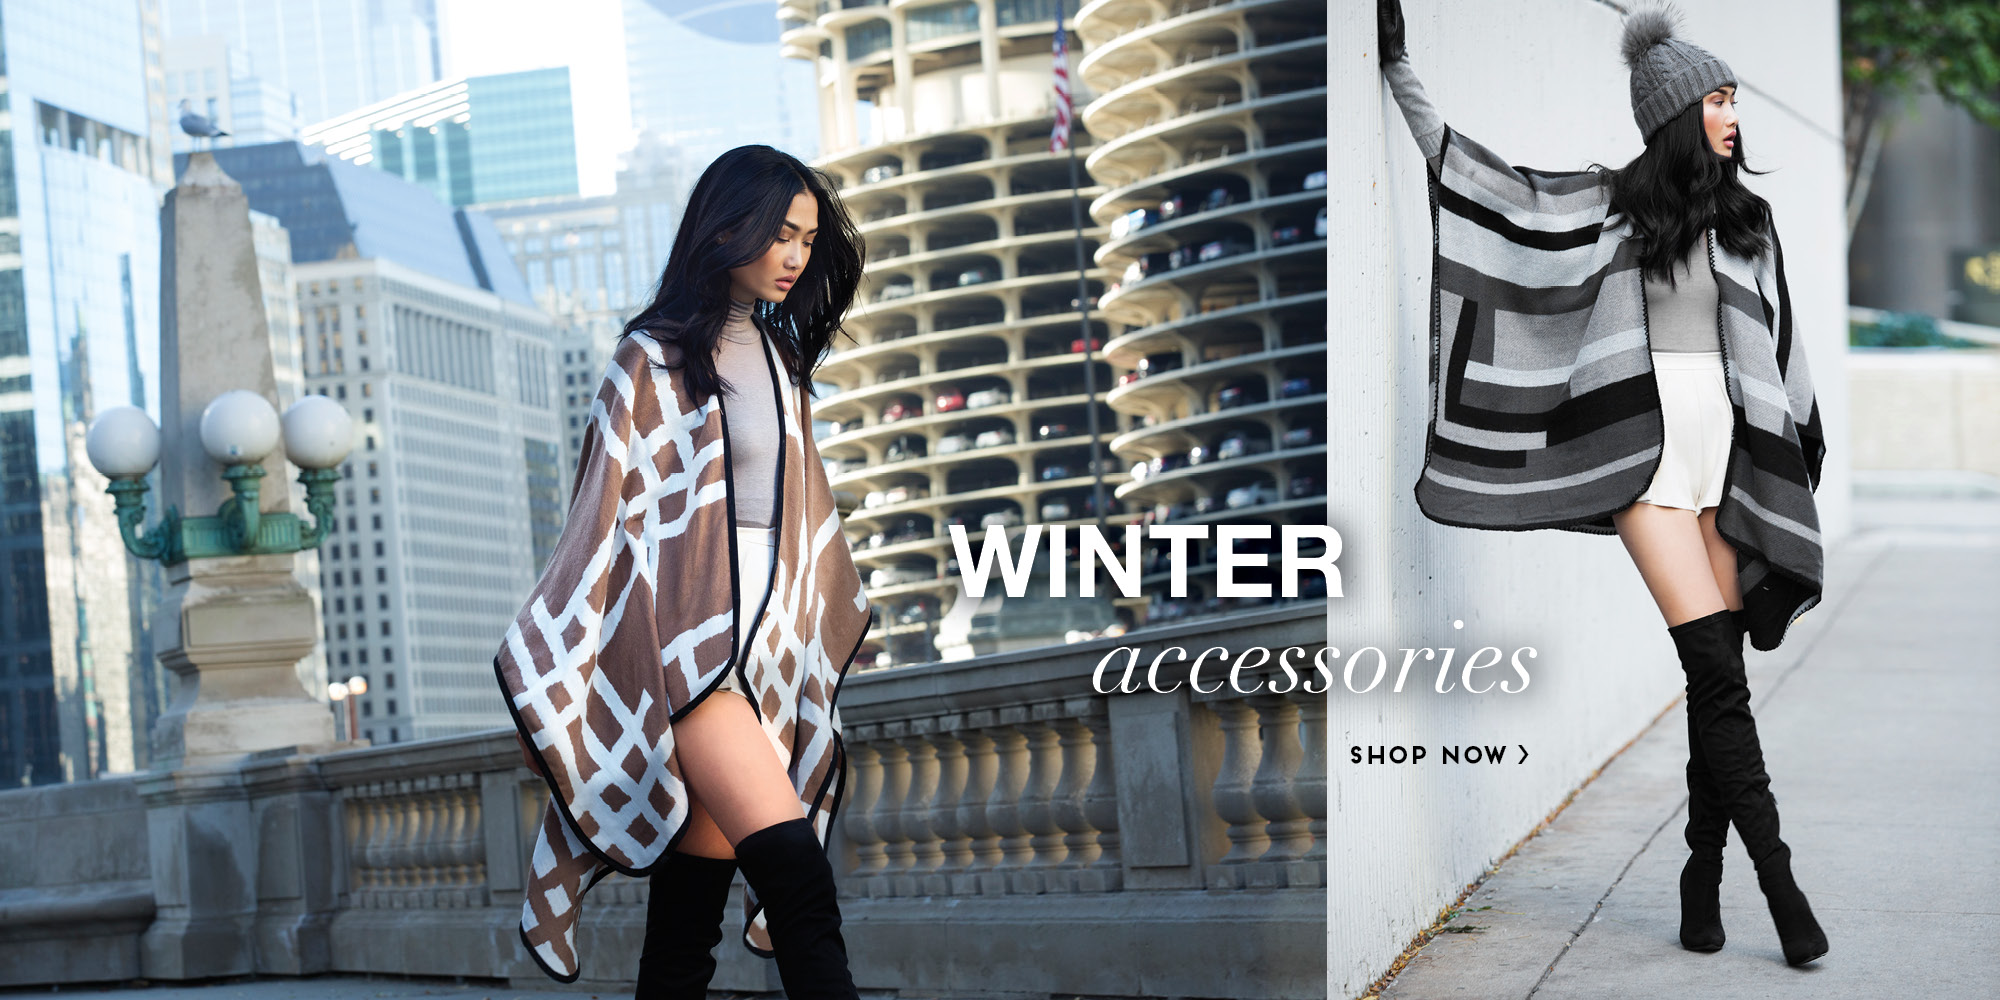 Click to Shop Winter Accessories